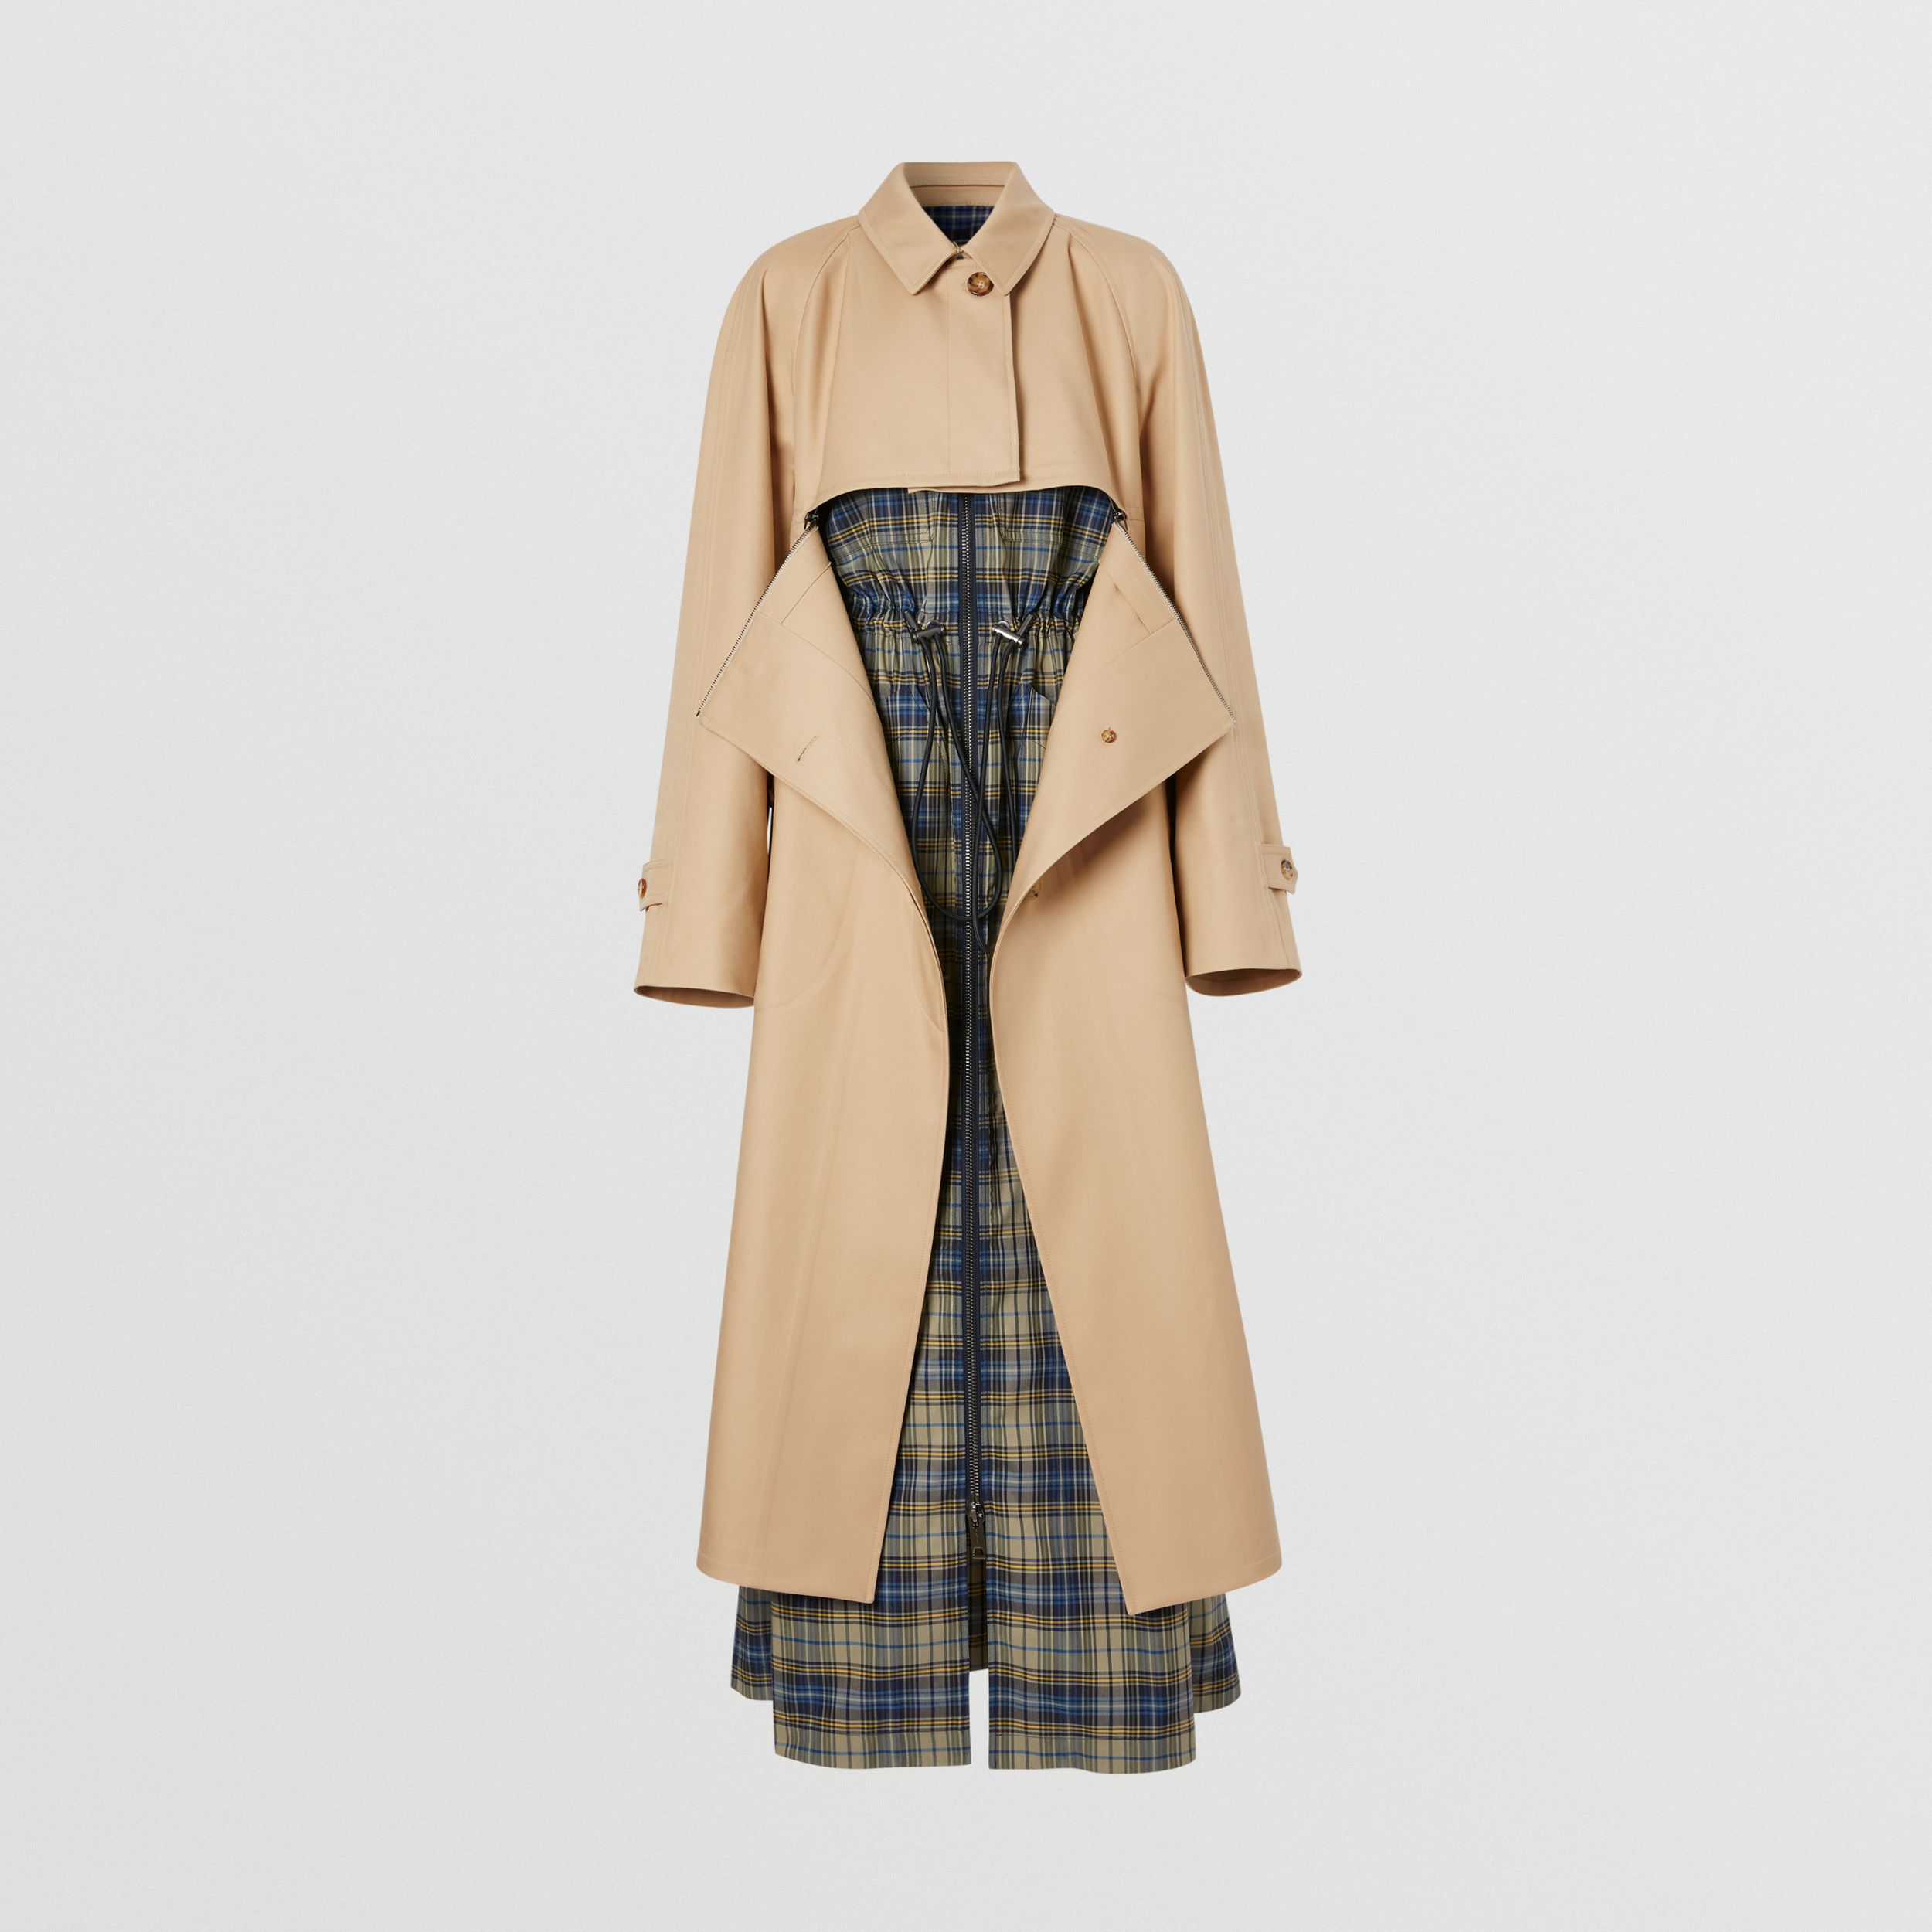 Car coat ricostruito in gabardine di cotone (Fulvo Tenue) - Donna | Burberry - 4